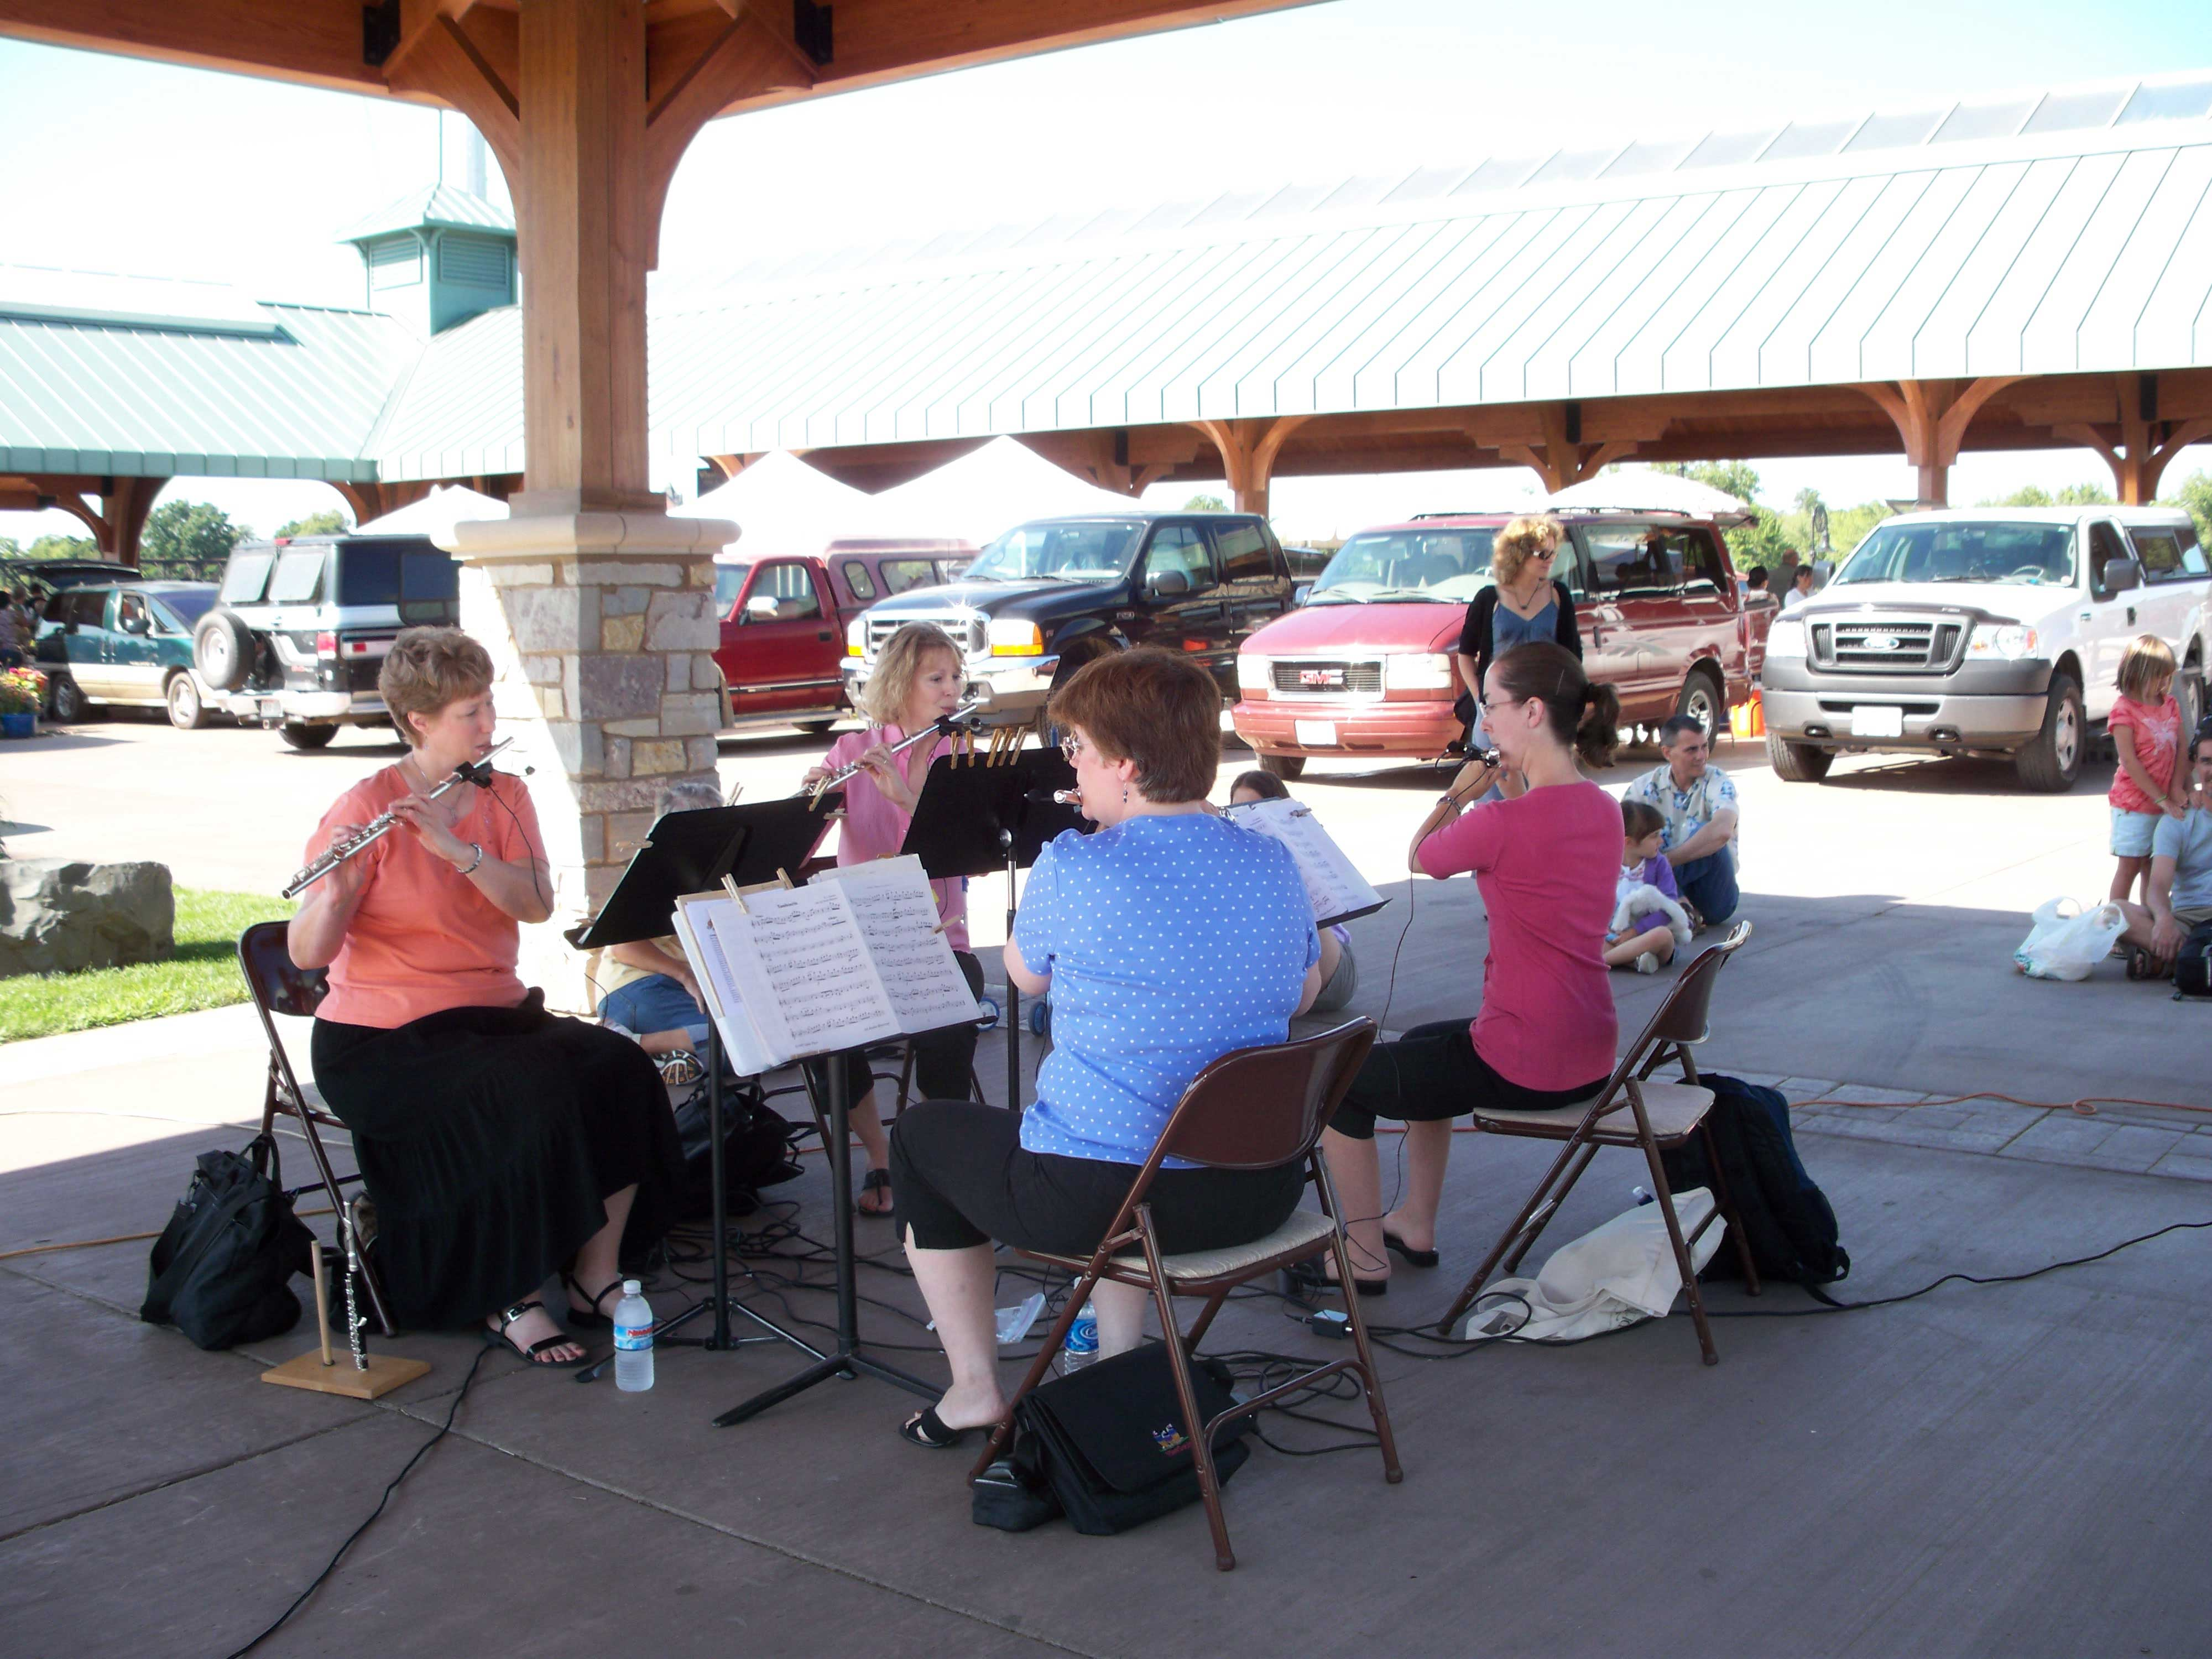 This is a picture of a group playing flutes.